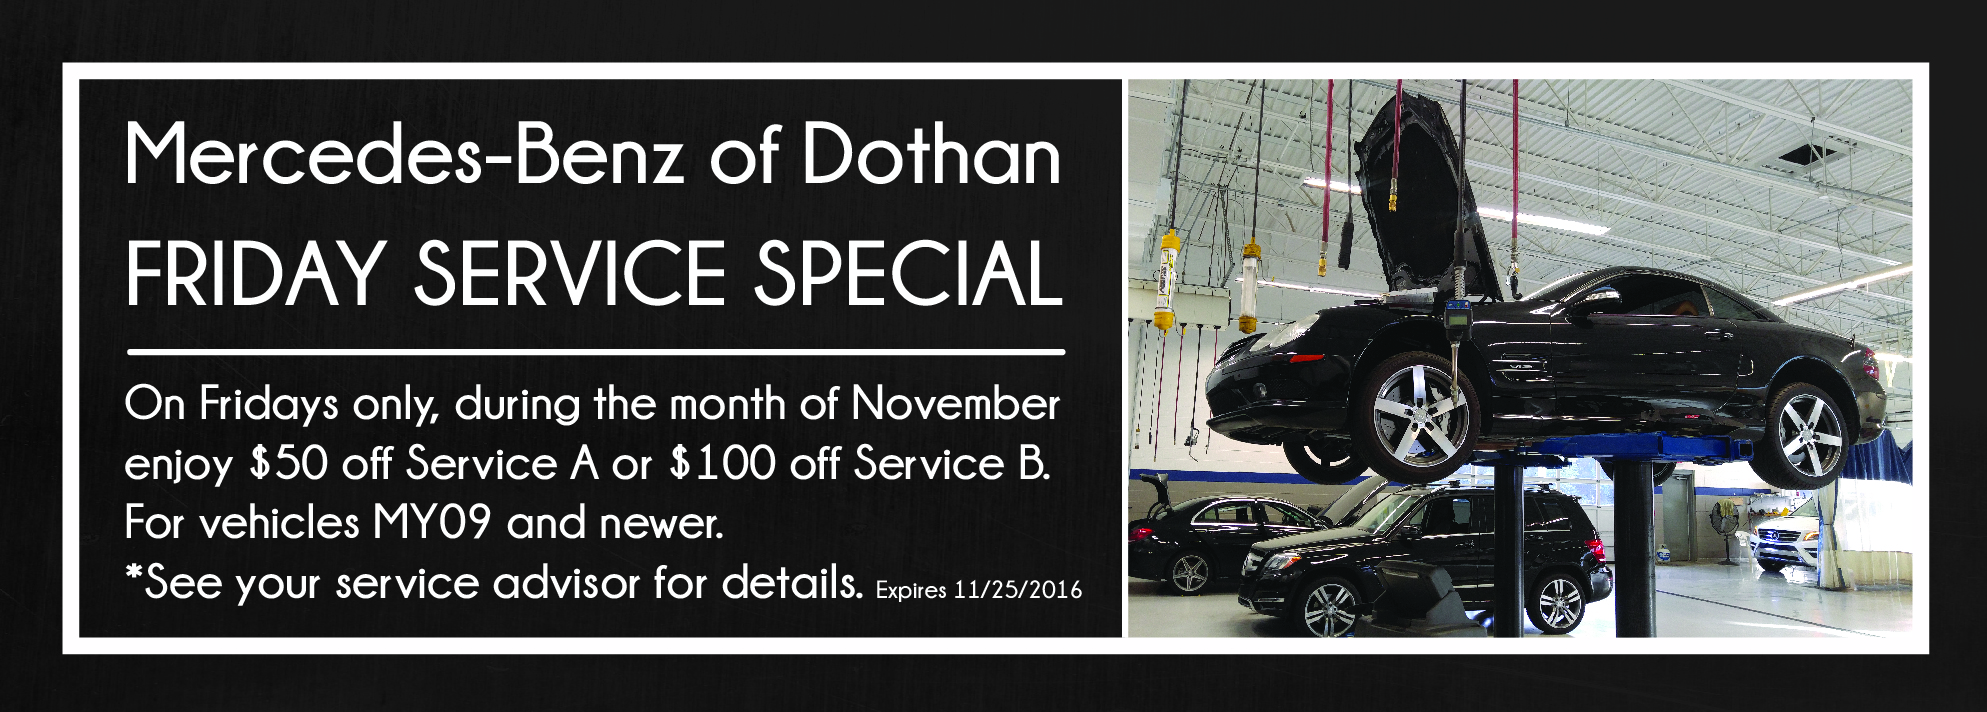 New and used car ads dothan al mercedes benz of dothan for Service coupons for mercedes benz